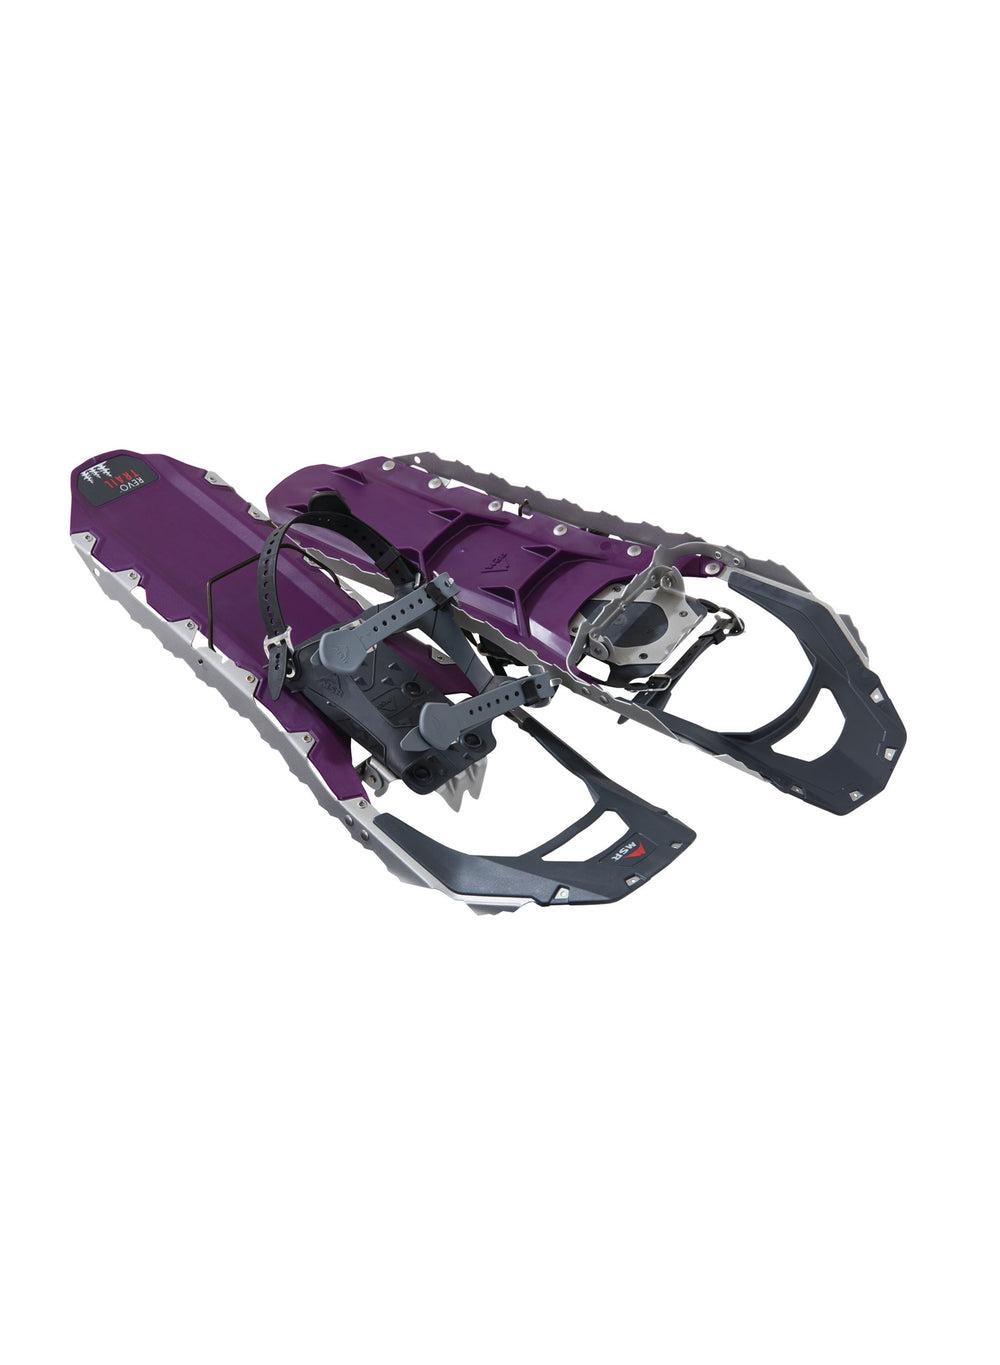 MSR Revo Trail 22 - Women's